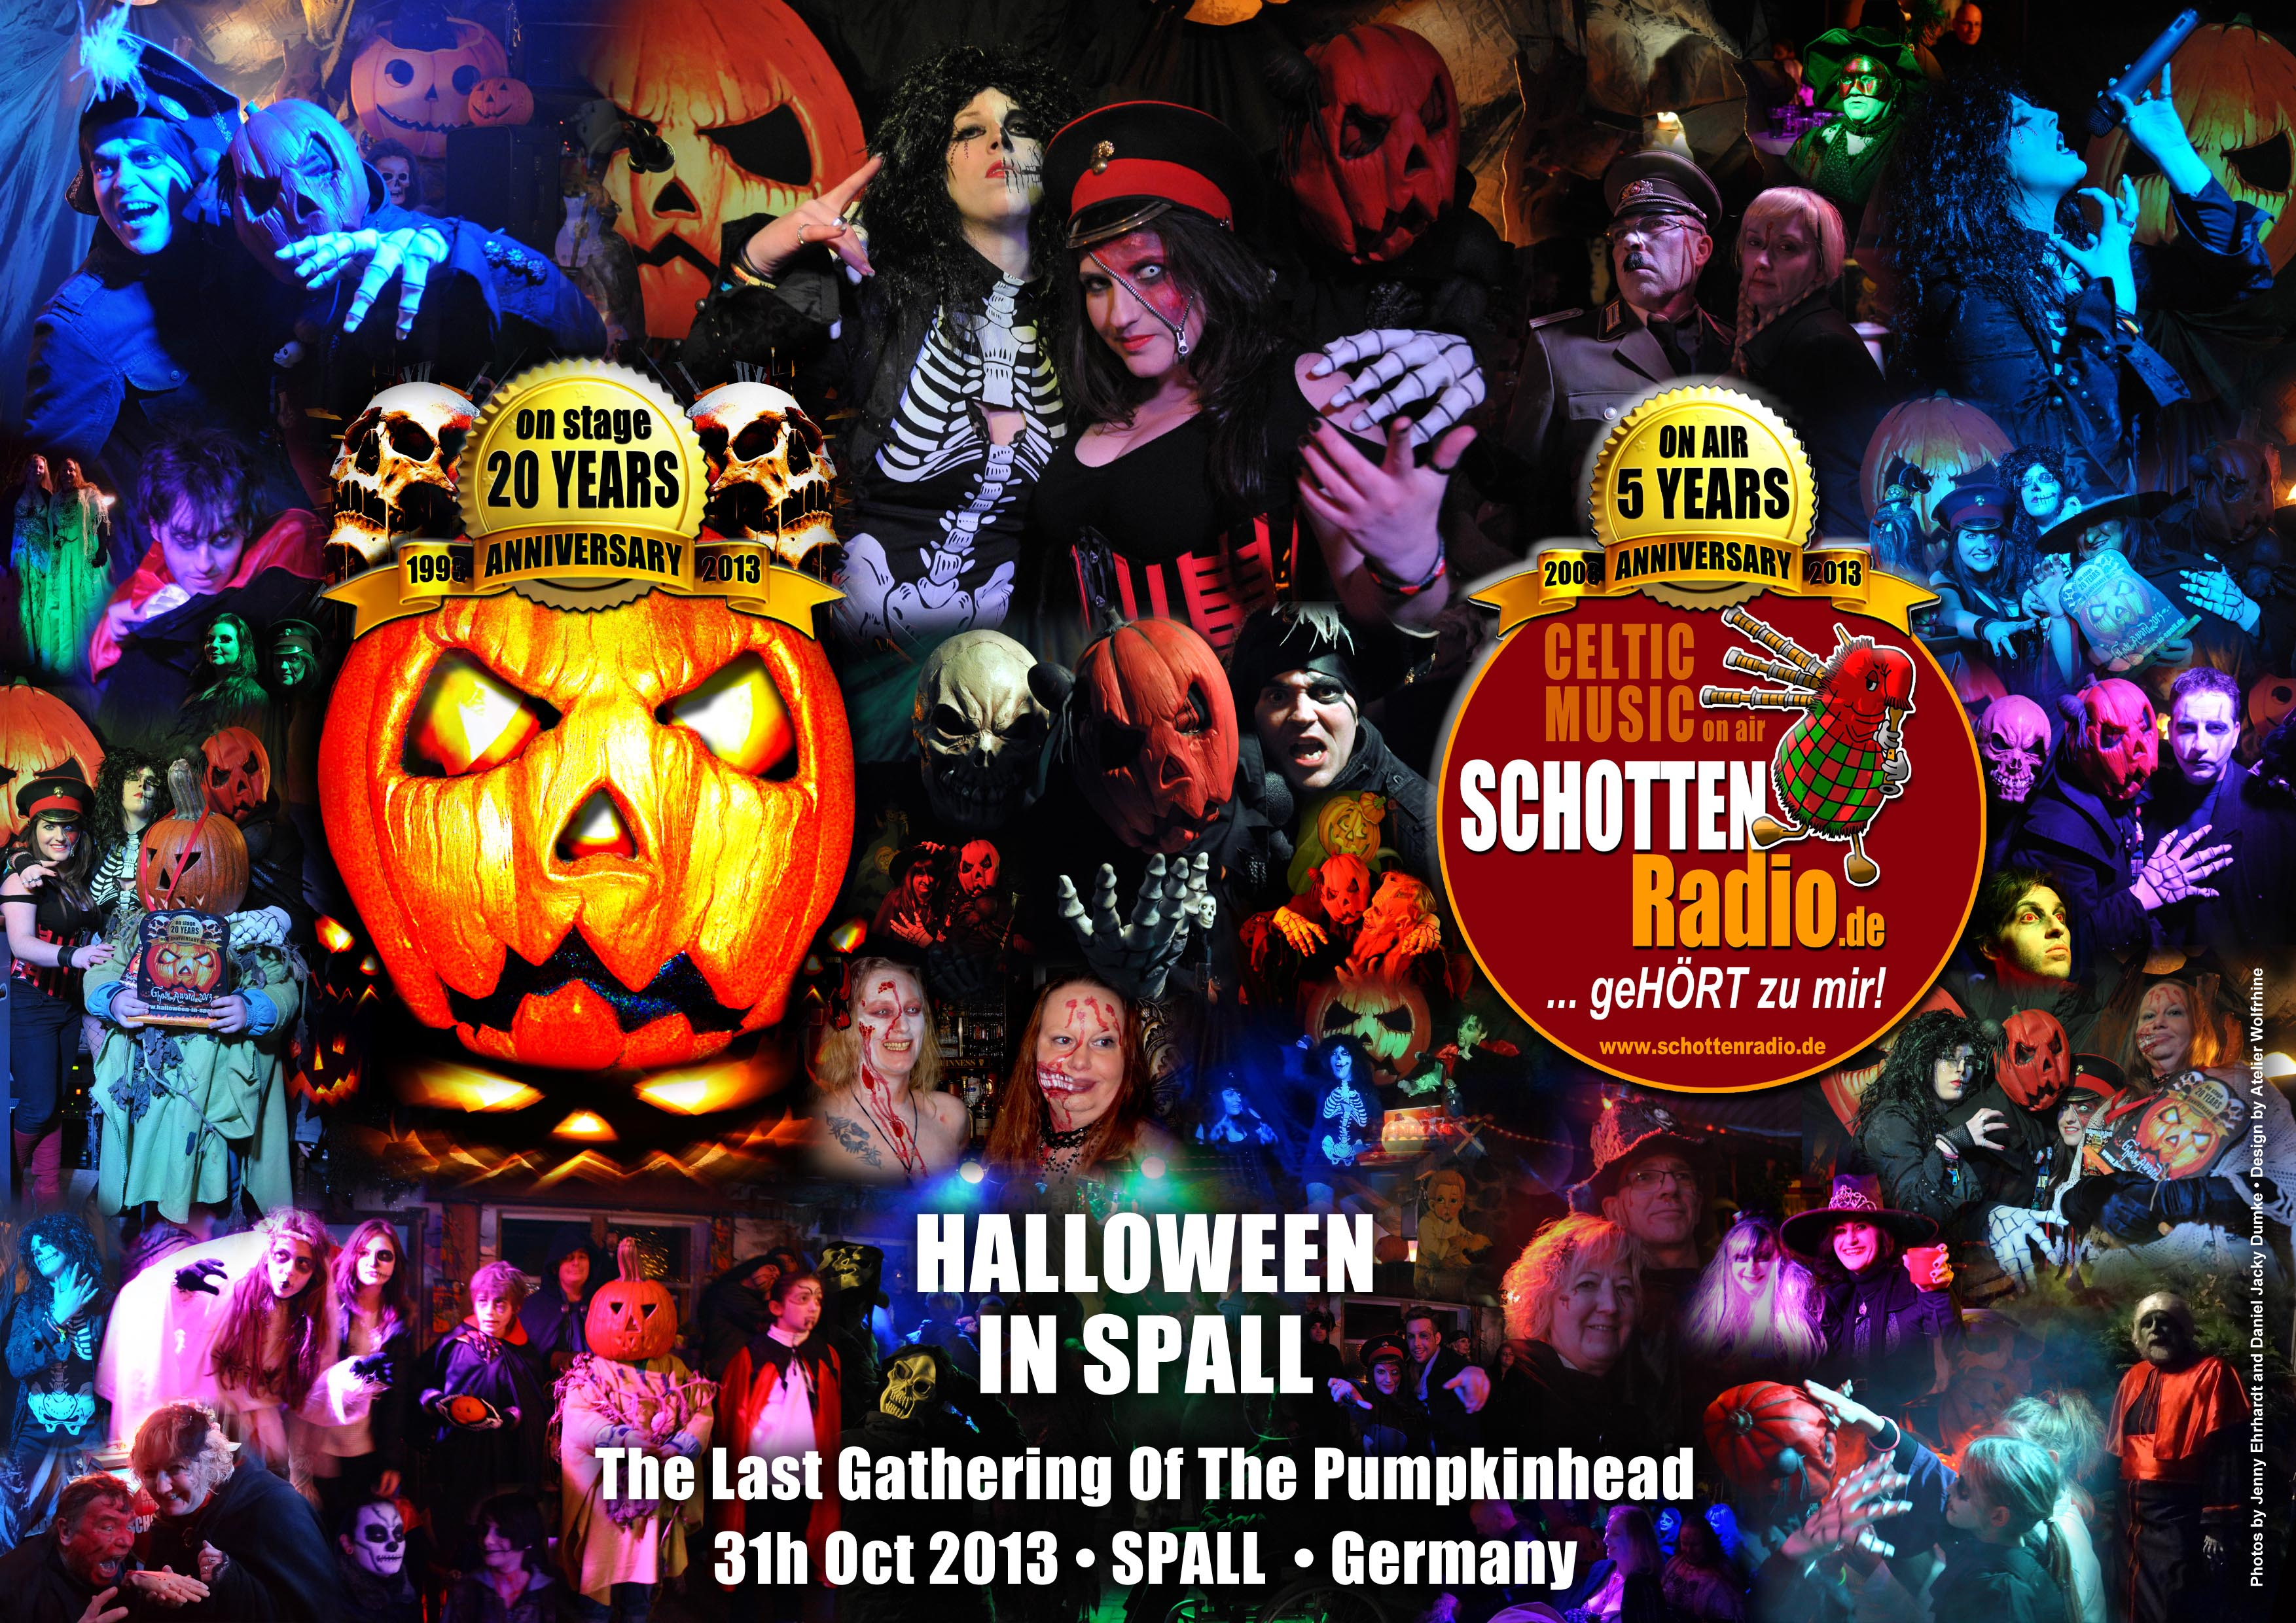 Home - Halloween in Spall